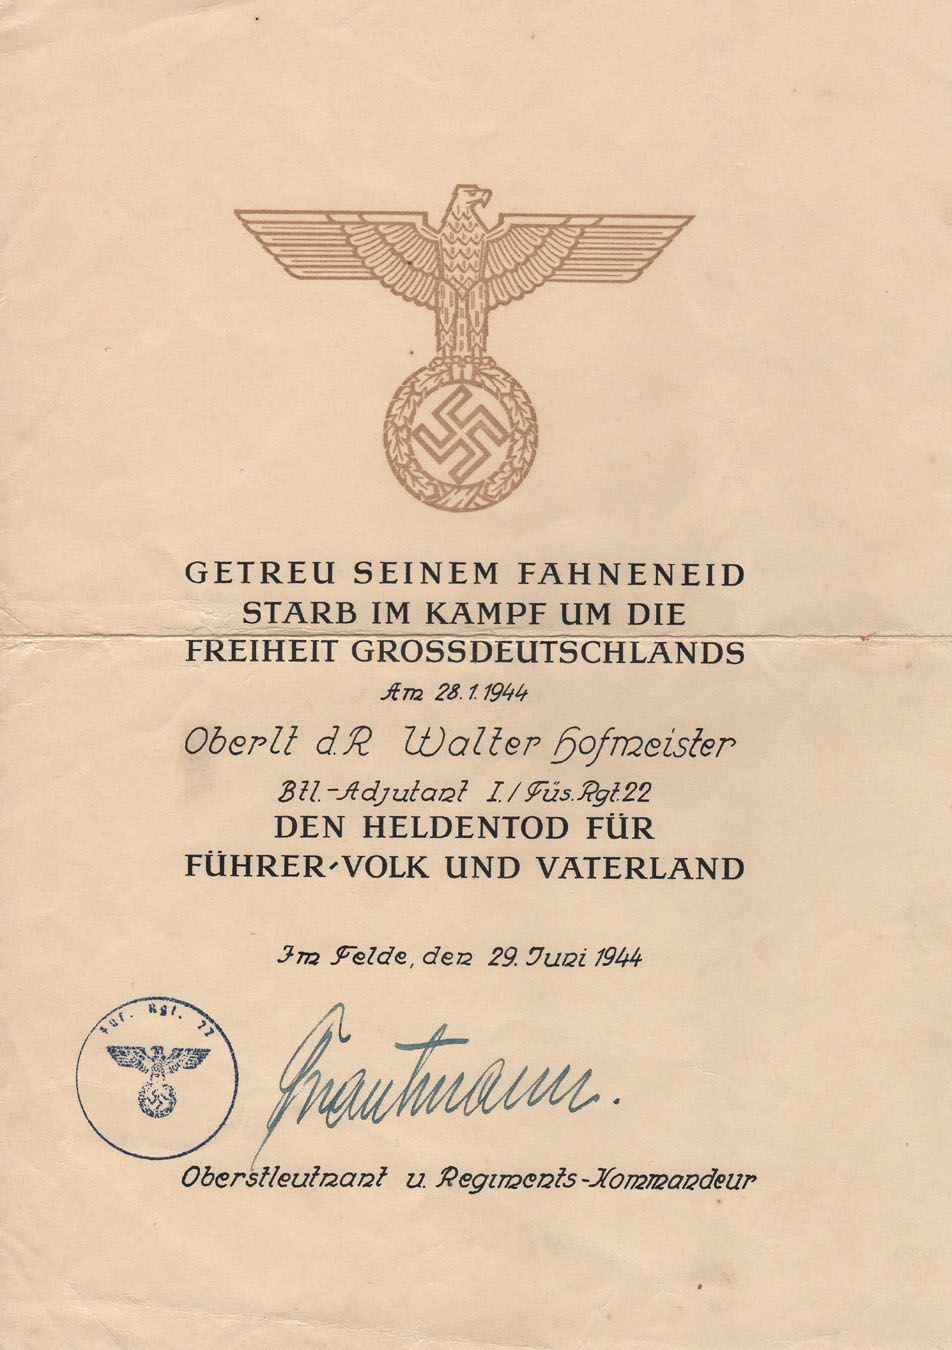 This Is An Official German Military Death Certificate Issued To The